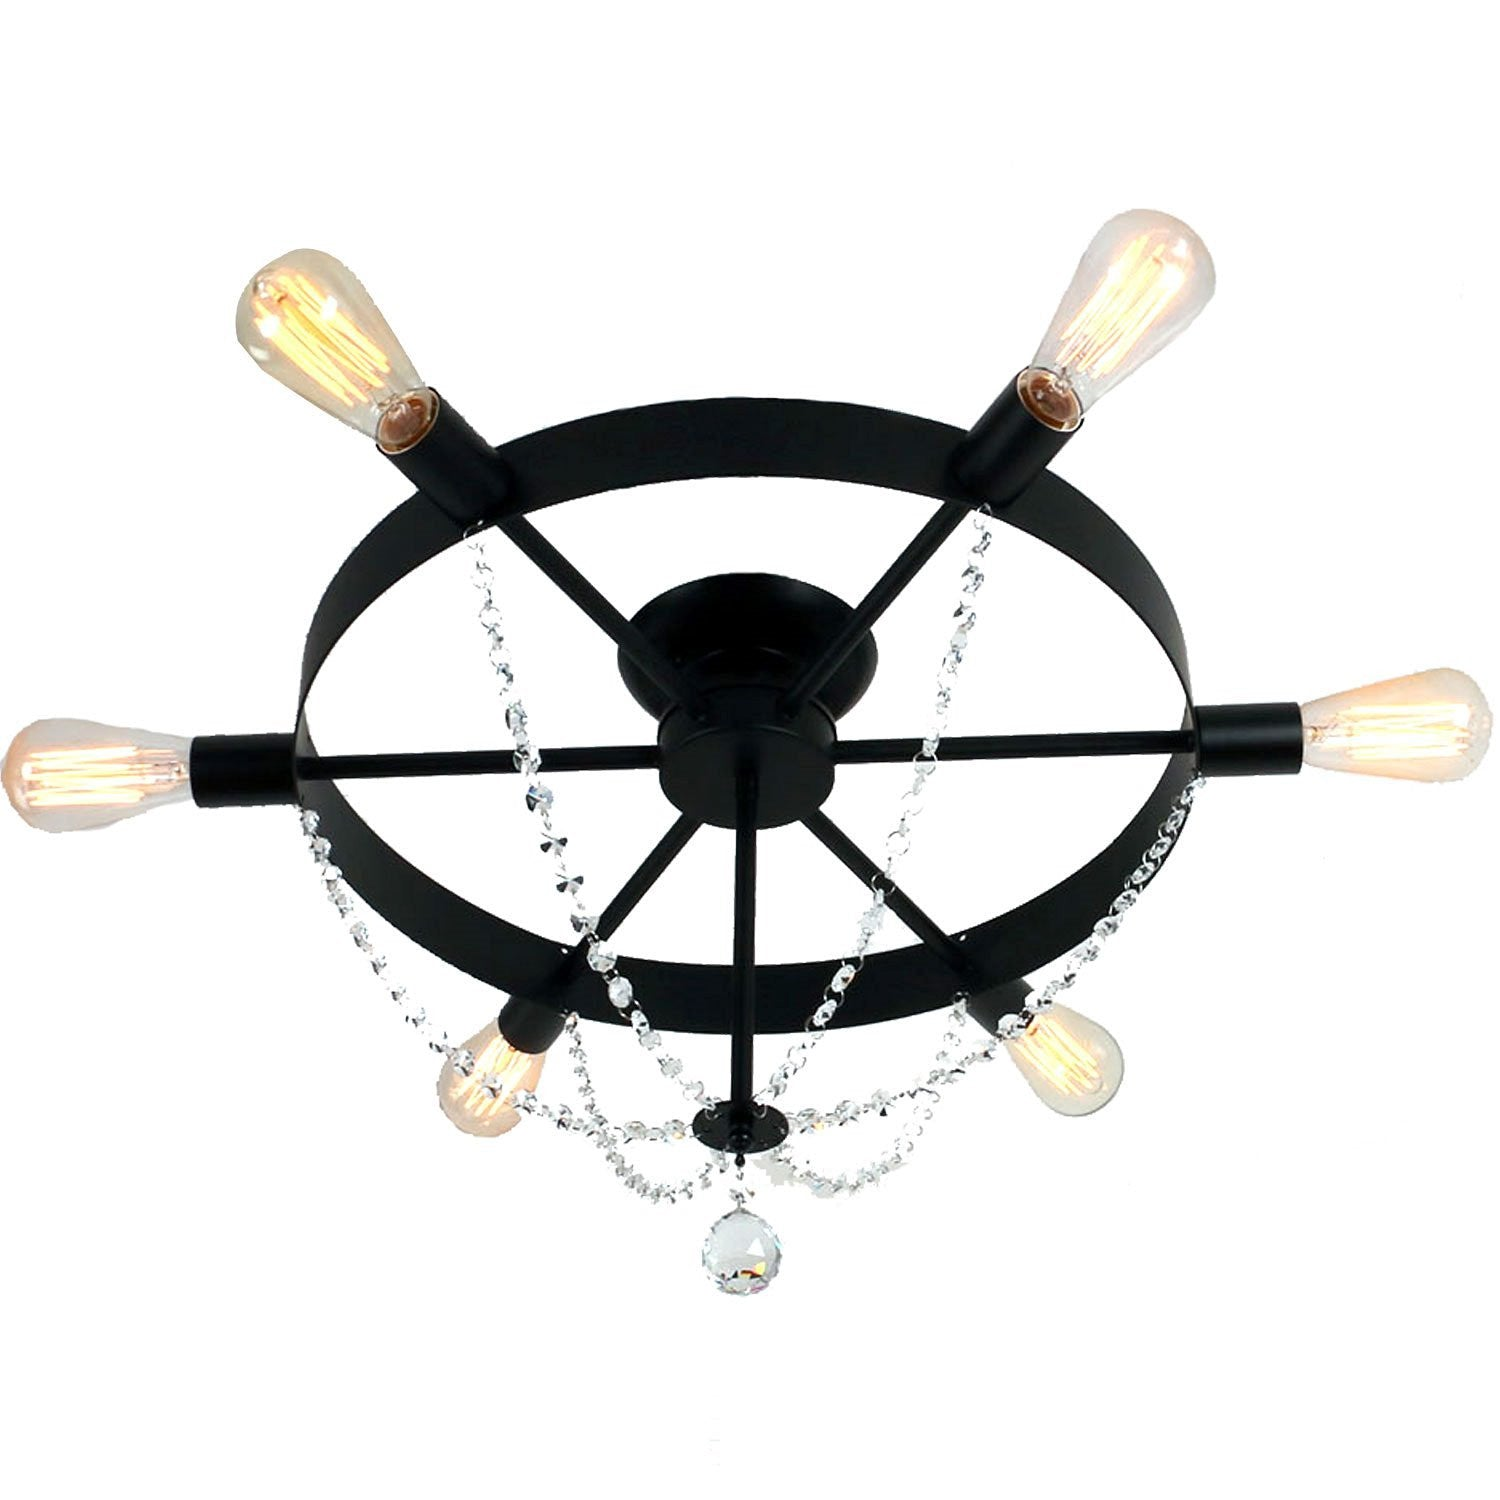 Unitary Brand Antique Black Metal Wheel Crystal Semi Flush Mount Ceiling Light With 6 E26 Bulb Sockets 240W Painted Finish